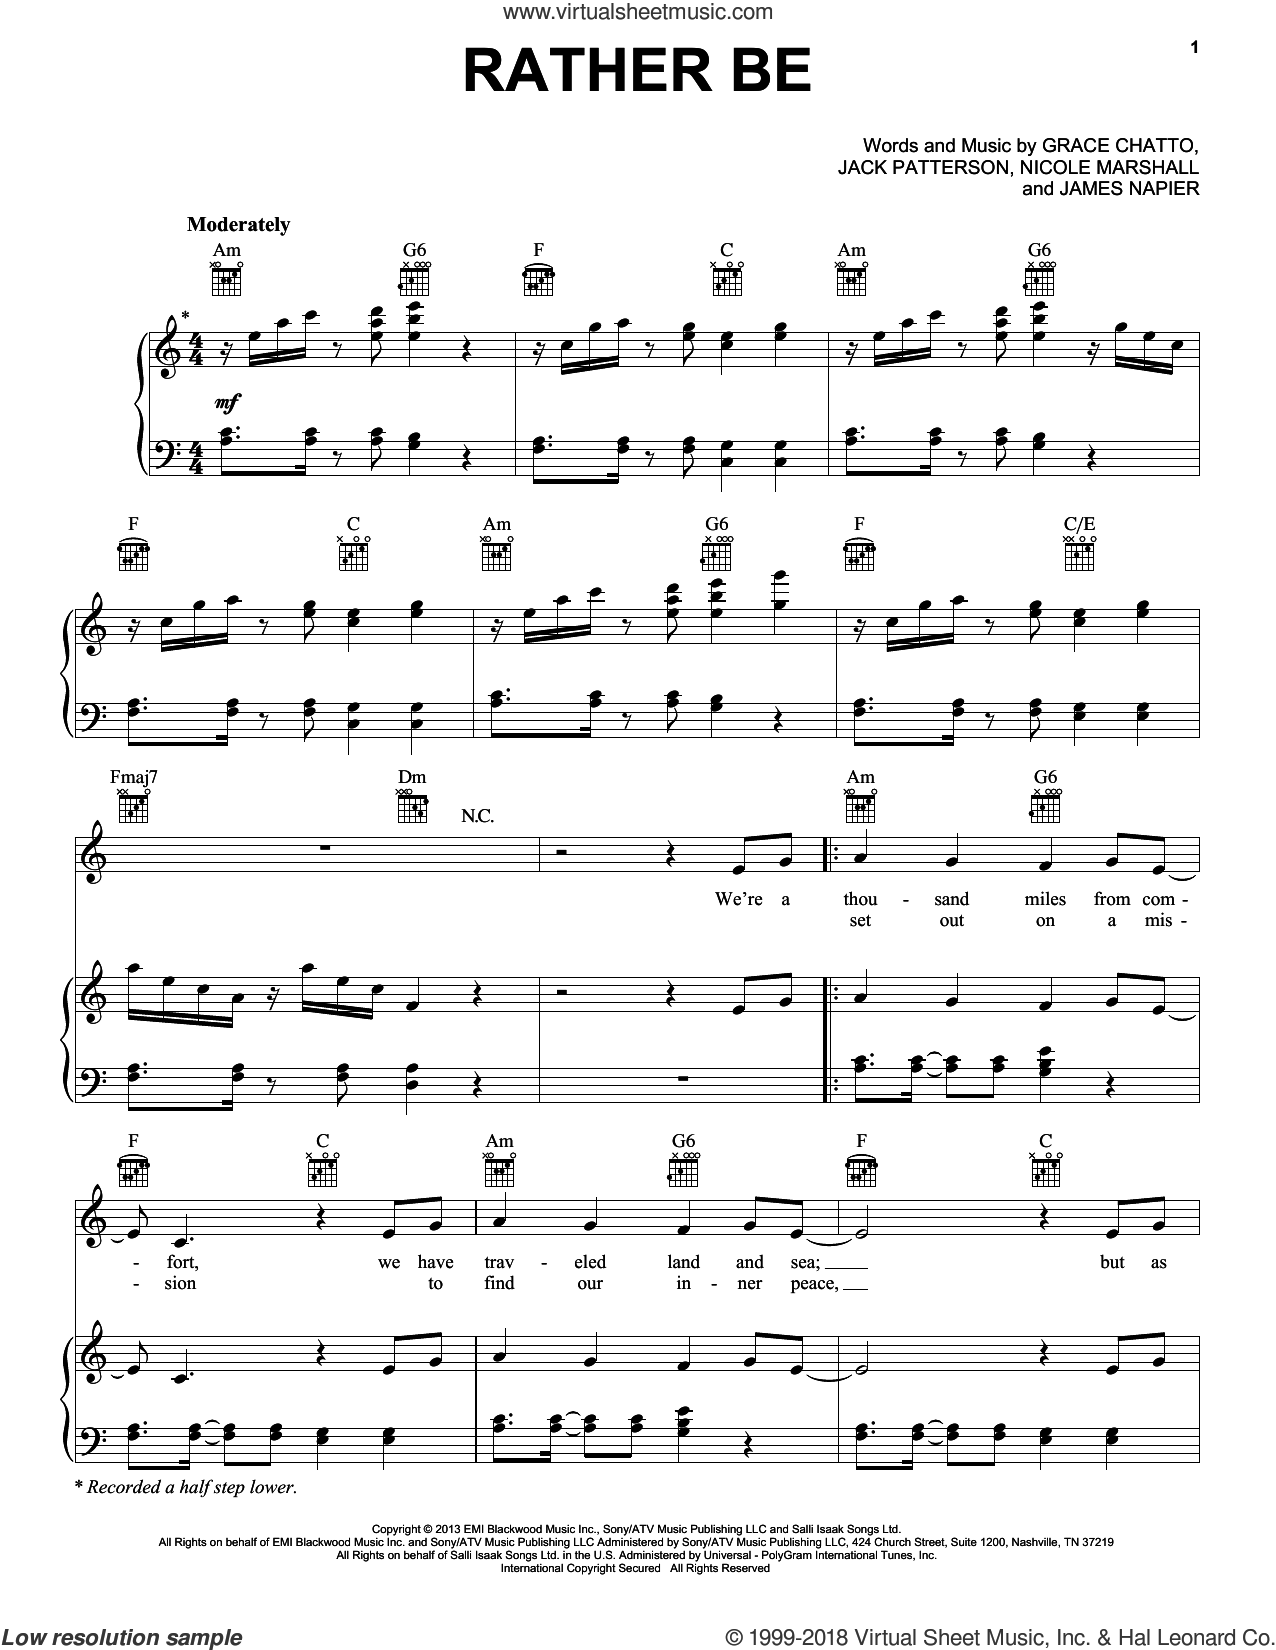 Rather Be sheet music for voice, piano or guitar by Clean Bandit feat. Jess Glynne and Clean Bandit. Score Image Preview.